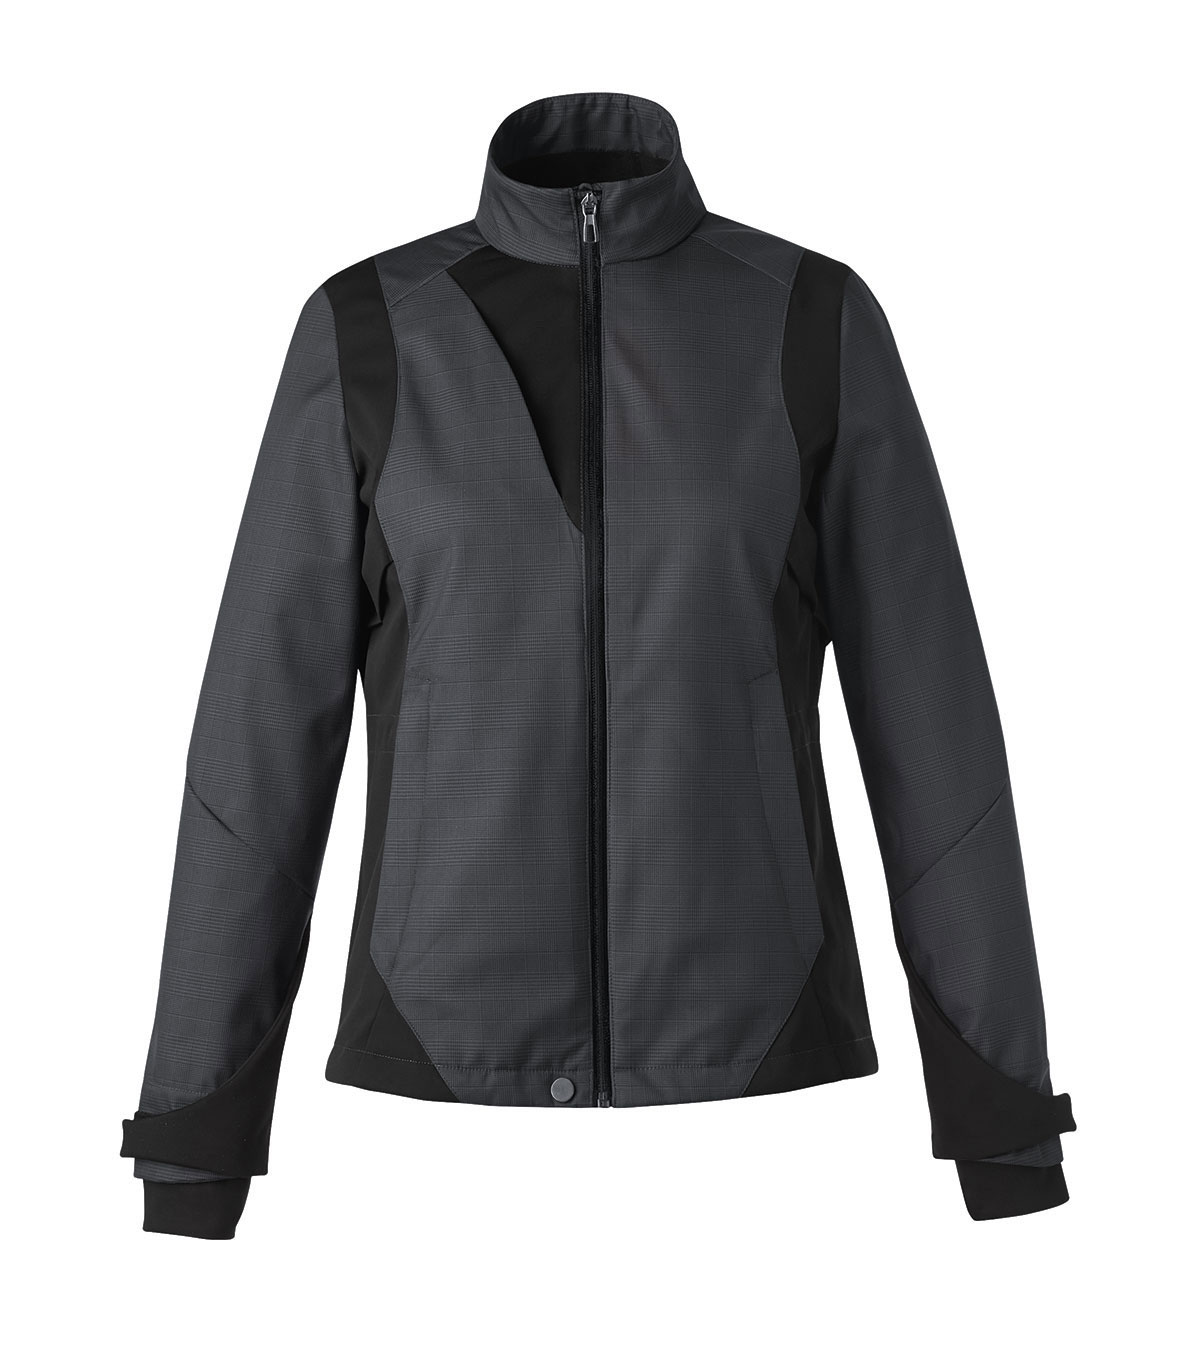 Womens Heat Reflect Jacket